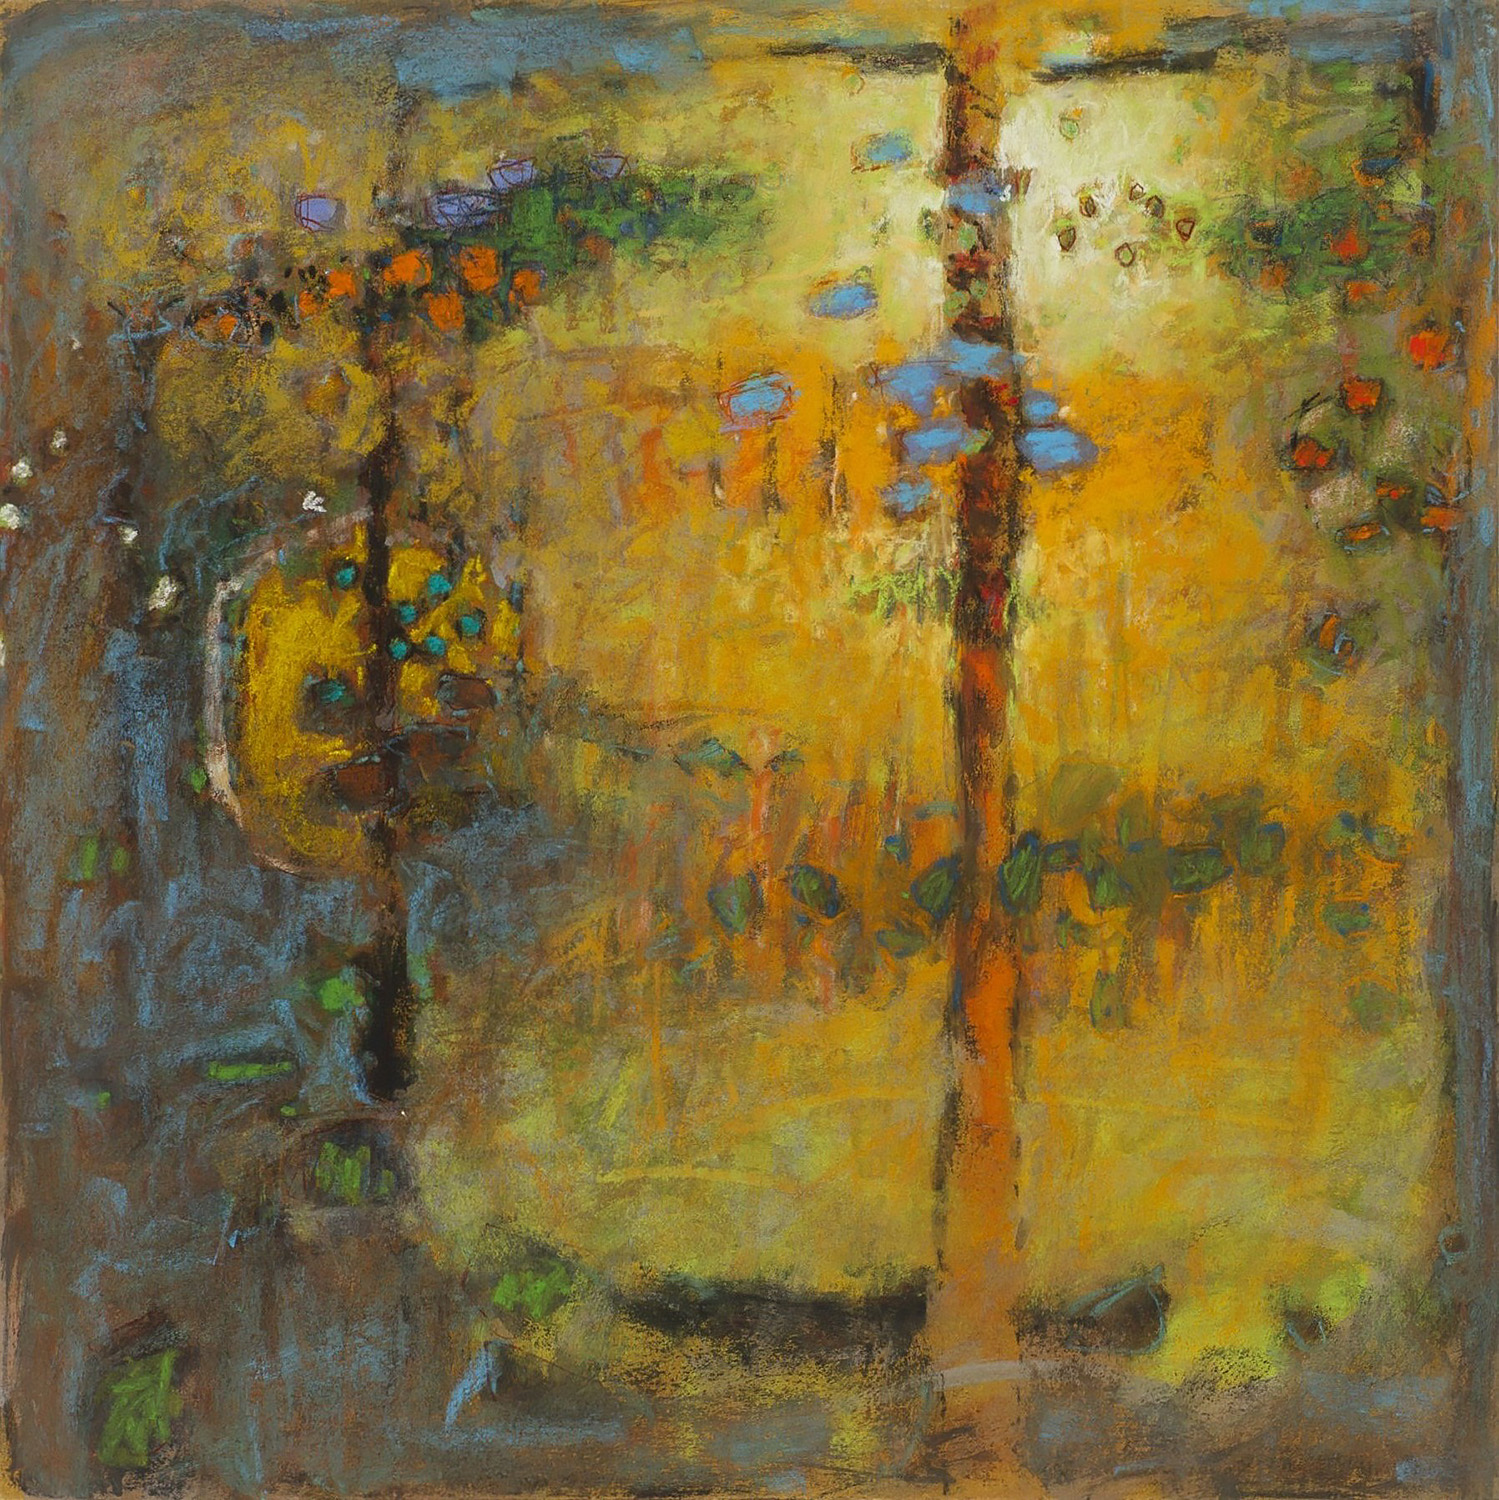 A Glimmer of Memory  | pastel on paper | 14 x 14"